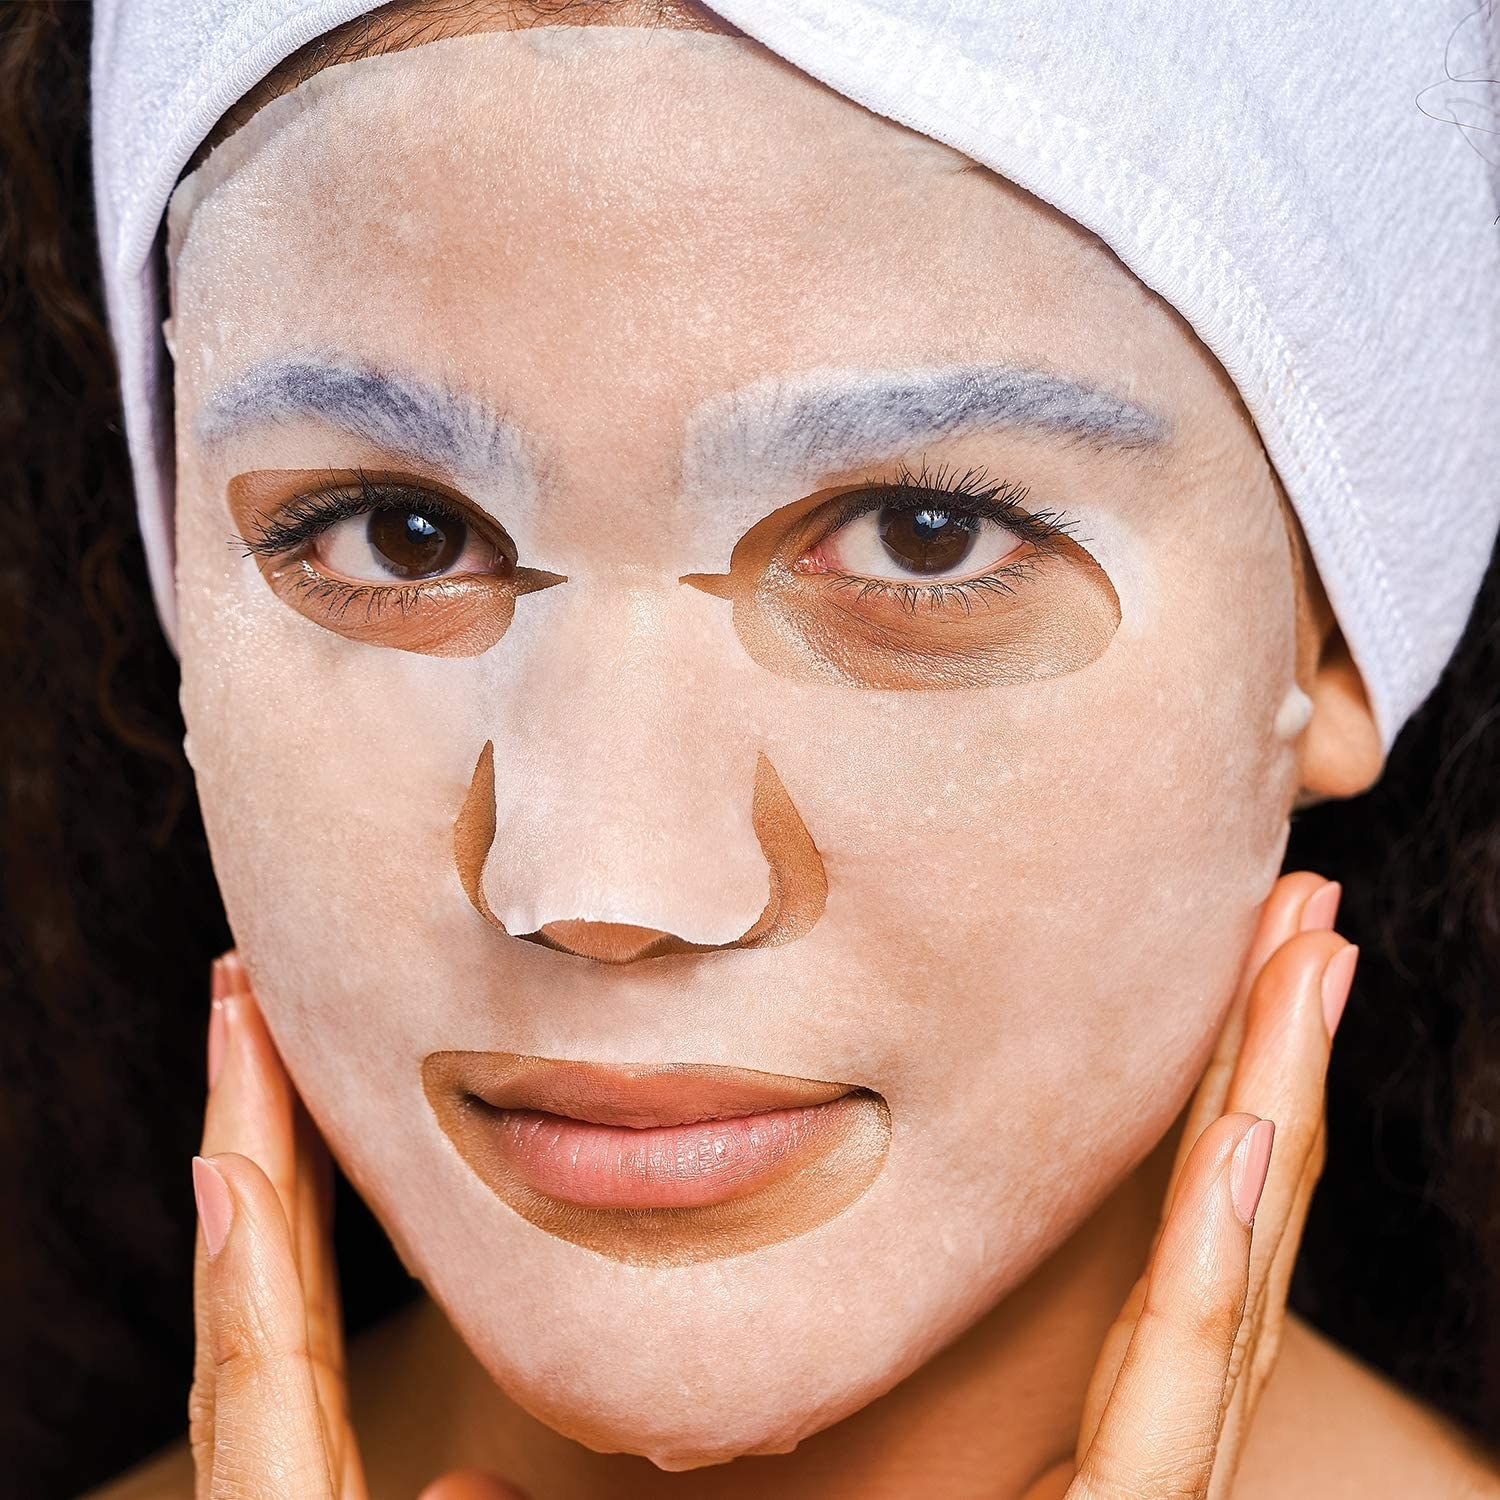 A person wearing the sheet mask on their face